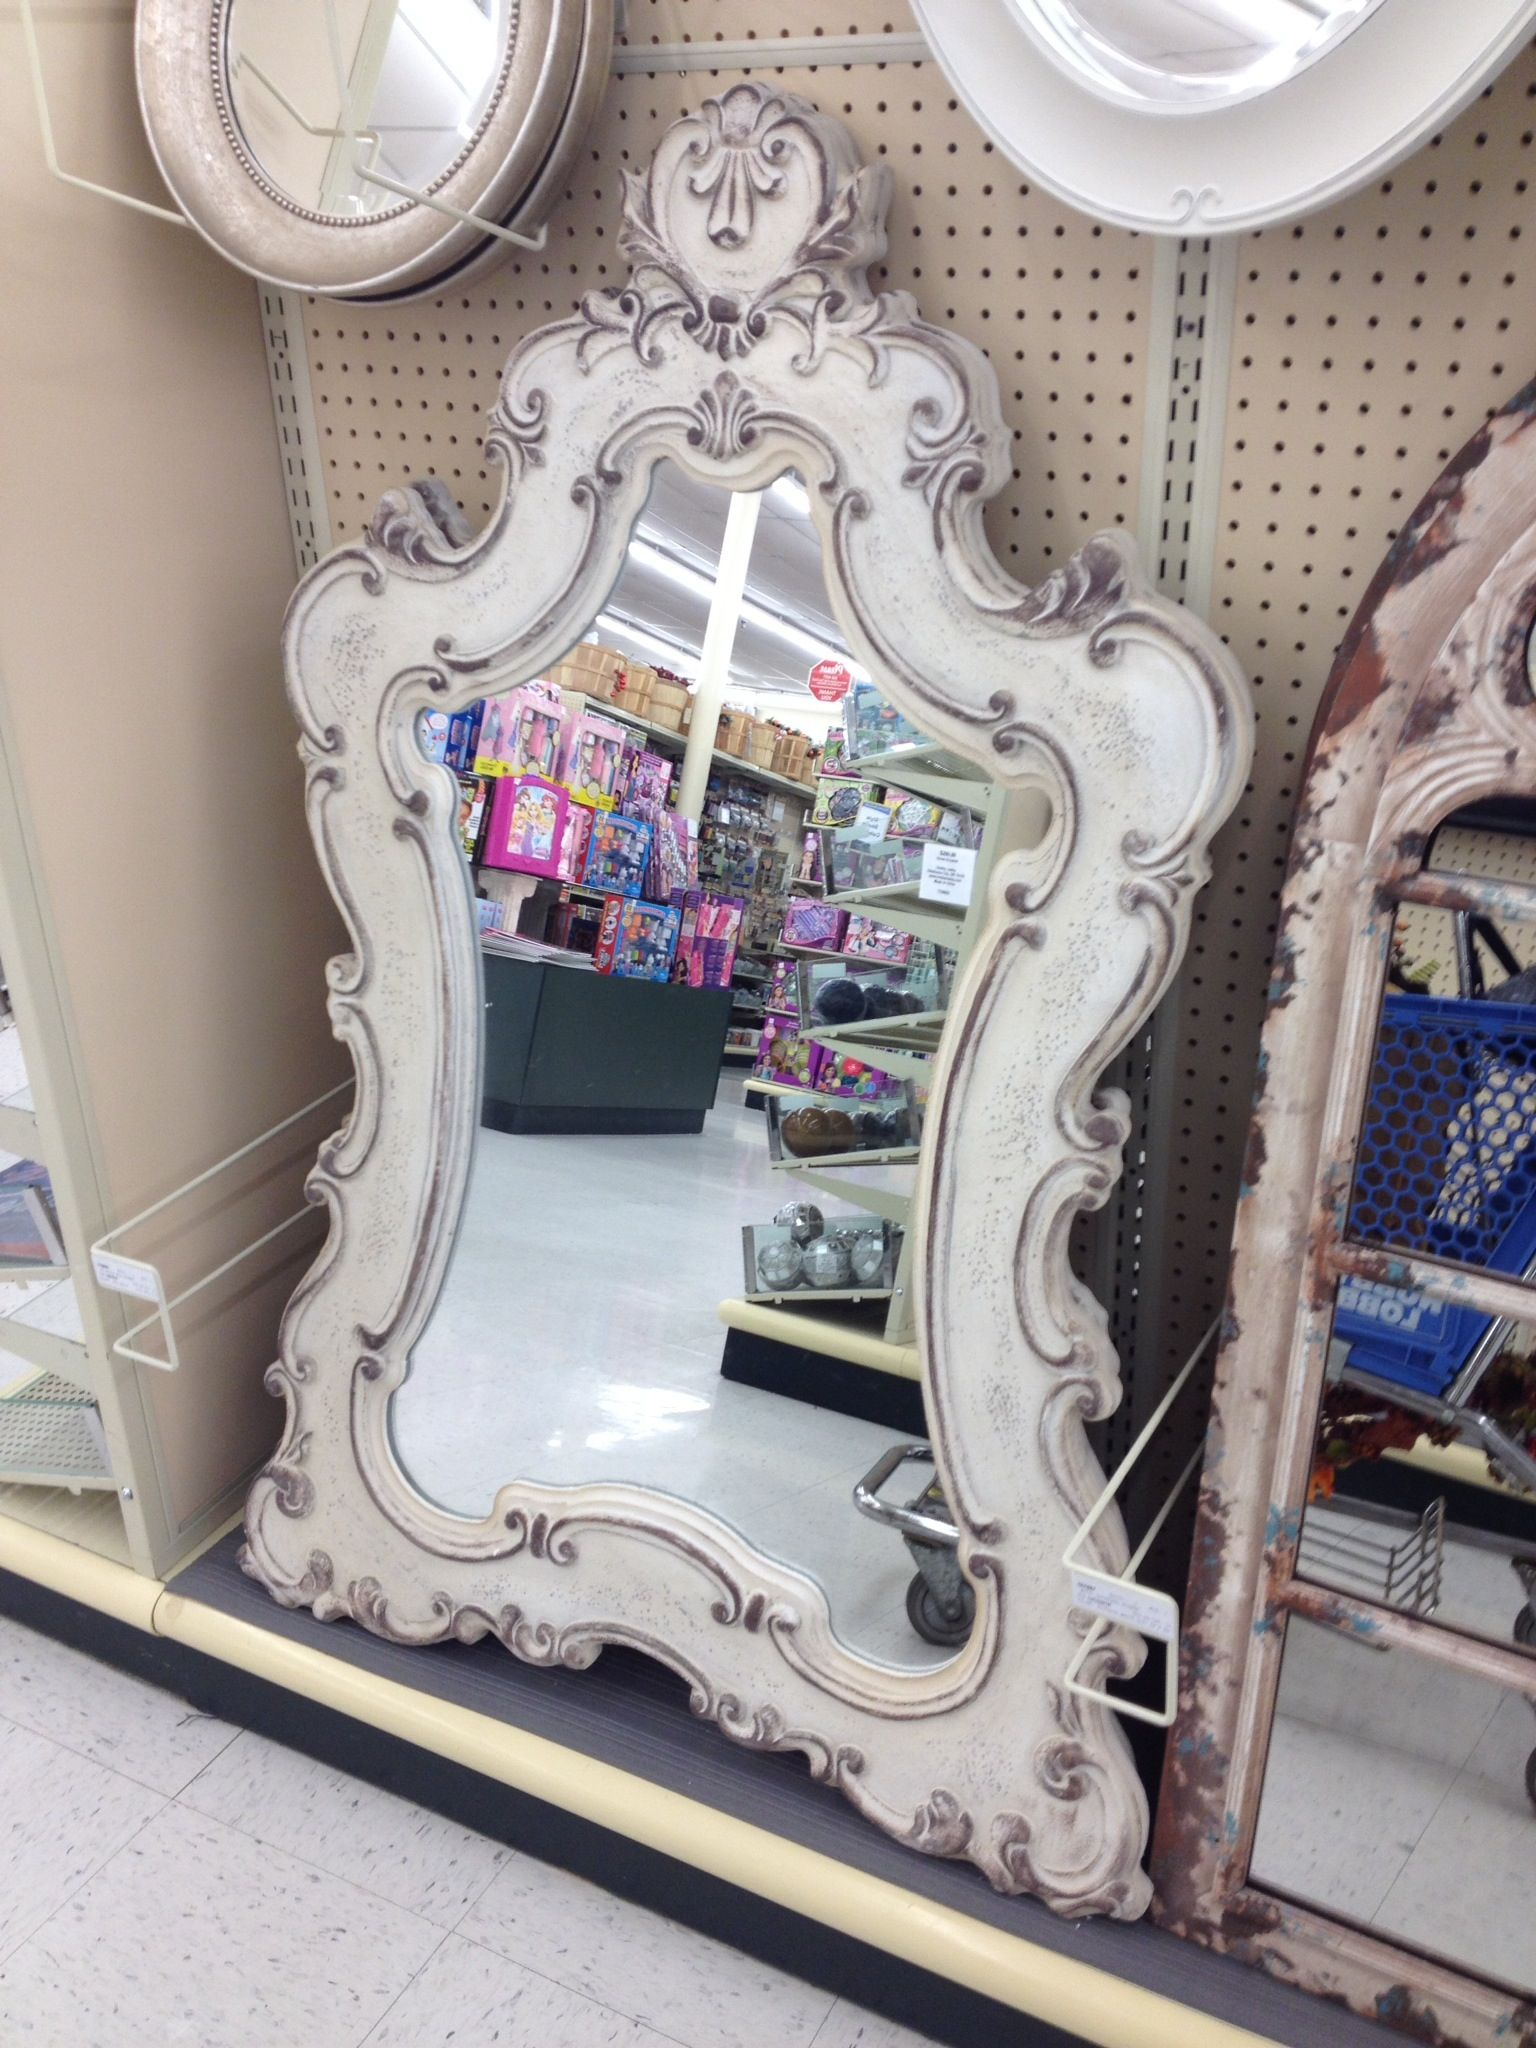 Metallic Decor Design Home Accents Mirror From Hobby Lobby Bath Home Decor Hobby Lobby